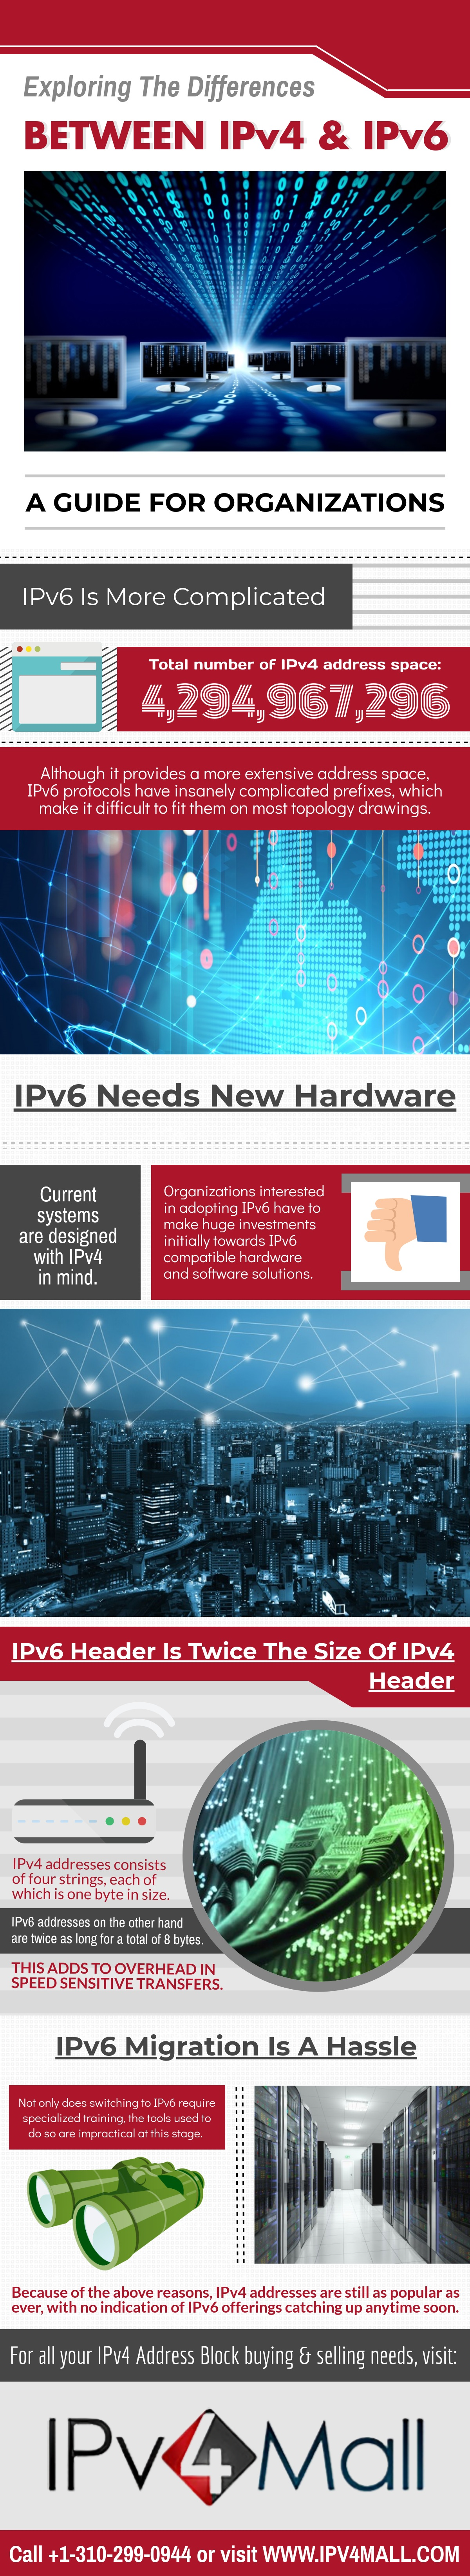 Major Differences Between IPv4 and IPv6